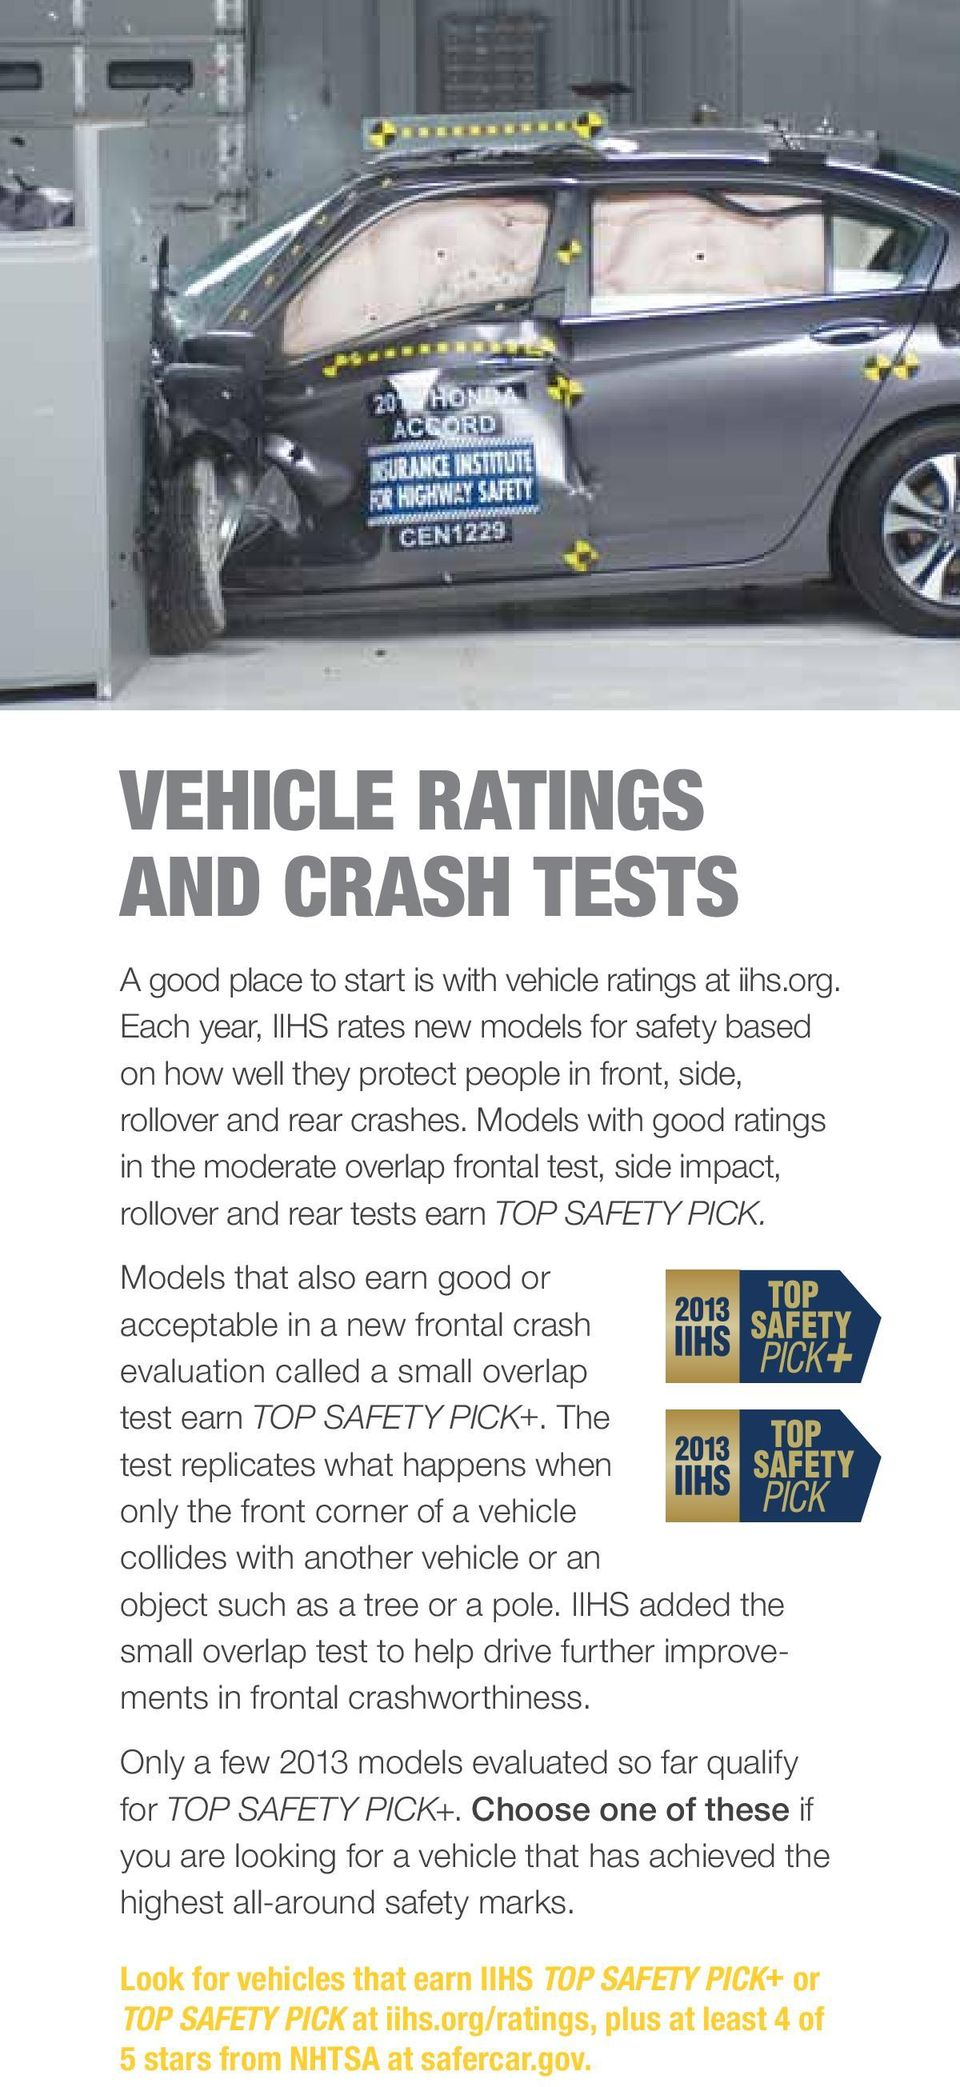 Models with good ratings in the moderate overlap frontal test, side impact, rollover and rear tests earn TOP SAFETY PICK.